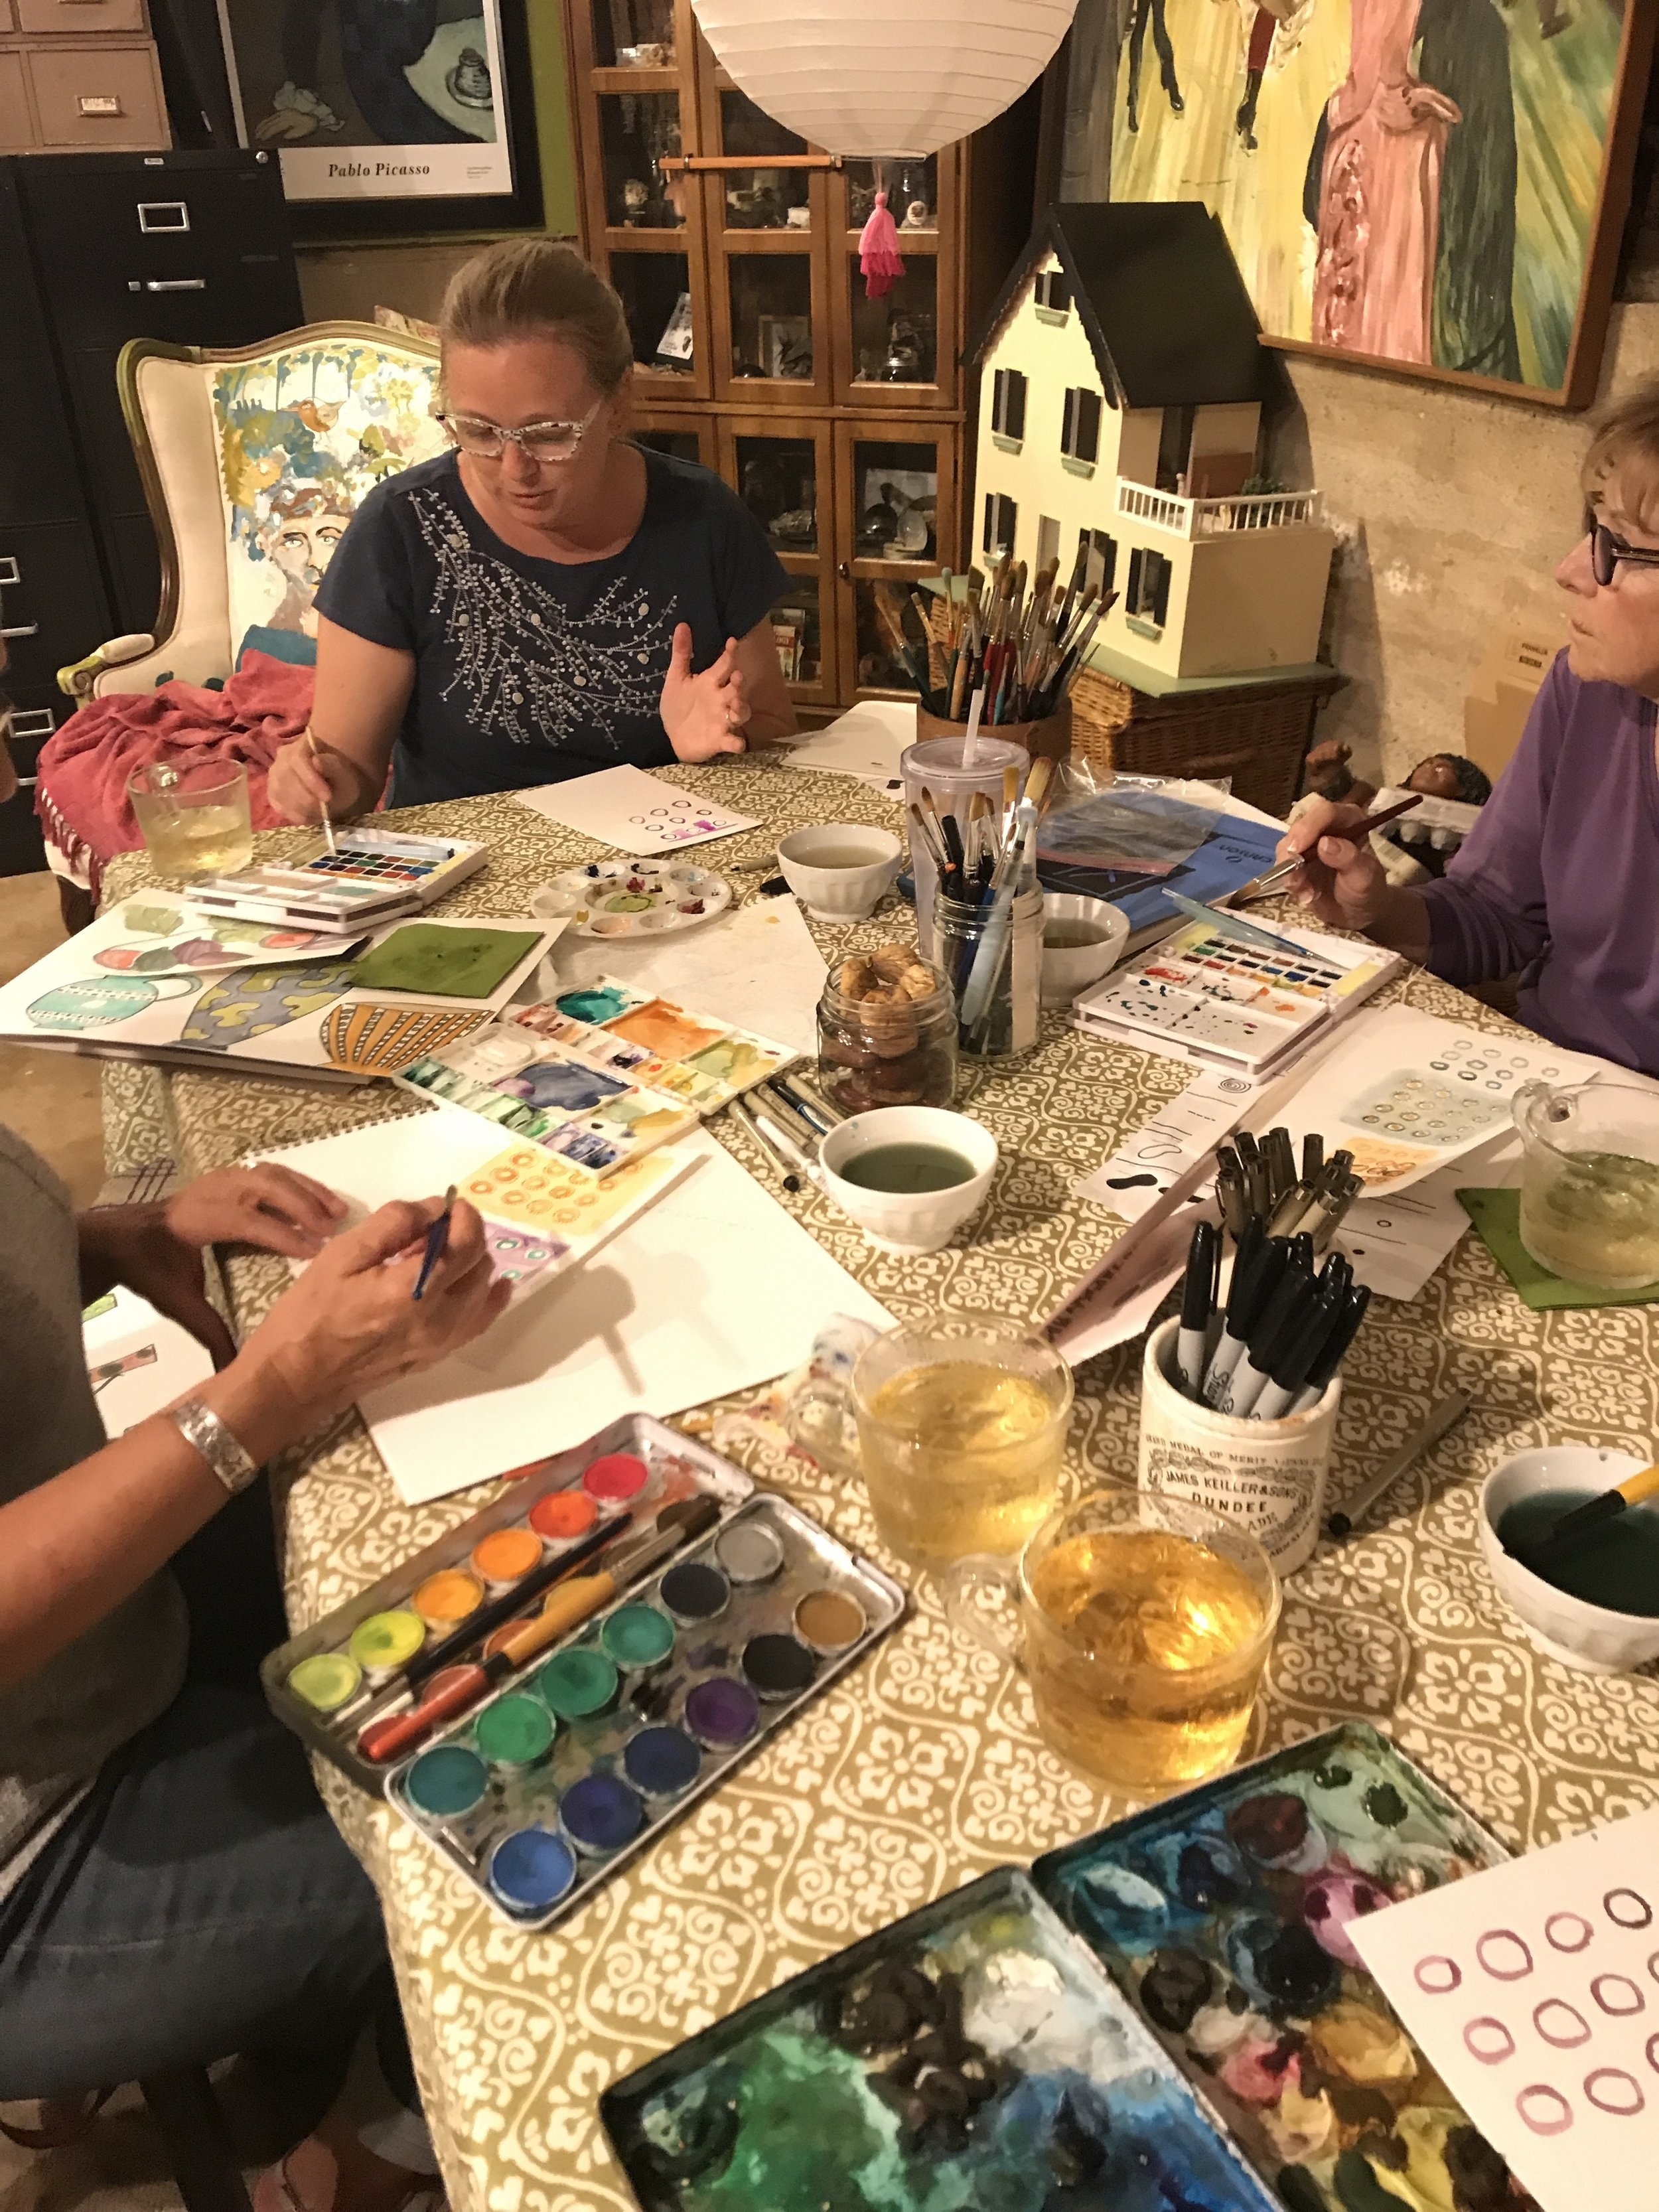 THE TABLE DURING AN OPEN STUDIO...WHERE SO MANY DIFFERENT TYPES OF WOMEN COME TO SIT AND PAINT. WE ARE FROM A VARIETY OF BACKGROUNDS AND FAMILIAL SITUATIONS. ALMOST ALL OF US HAVE A MEASURE OF HESITATION IN OUR CREATIVE PROCESS THAT HAS HELD US BACK FROM GOOD CREATIVE WORK. THE DIALOGUE IS RICH AT THIS WORK TABLE...AND FRIENDSHIPS BEGIN TO RUN DEEP EVEN IN THE FIRST FEW MONTHS OF GATHERING. IT IS EASY TO SIT QUIETLY FOR THE ENTIRE TIME, OR TO WALK THROUGH THE STUDIO DOORS WITH A TOPIC YOU'D LIKE TO DISCUSS. SHARING IDEAS WITH A BIT OF KINDNESS ALLOWS FOR MANY IDEAS TO BE EXPRESSED. WOMEN ARE SEEING THAT THEY HAVE A BEAUTIFUL RESOURCE IN THE HELP OF OTHER WOMEN. WINDS OF CHANGE ARE BREWING. ITS AN EXCITING TIME AND AN IMPORTANT ONE. ALTHOUGH MY STUDIO IS A TINY SPECK ON THE PLANET WHERE WE DWELL, IT MATTERS DEEPLY TO ME THAT IT BE A LARGE, EXPANSIVE PLACE FOR ANY WOMAN WHO IS DESIRING WHOLENESS AND WELLBEING WITHIN HER PSYCHE, HER PHYSICAL BODY, HER MIND, AND HER CREATIVE SELF. IN EVERY EVENT THAT I OFFER IN THIS STUDIO, I TAKE THESE THINGS INTO CONSIDERATION. WELLNESS MATTERS IMMENSELY.